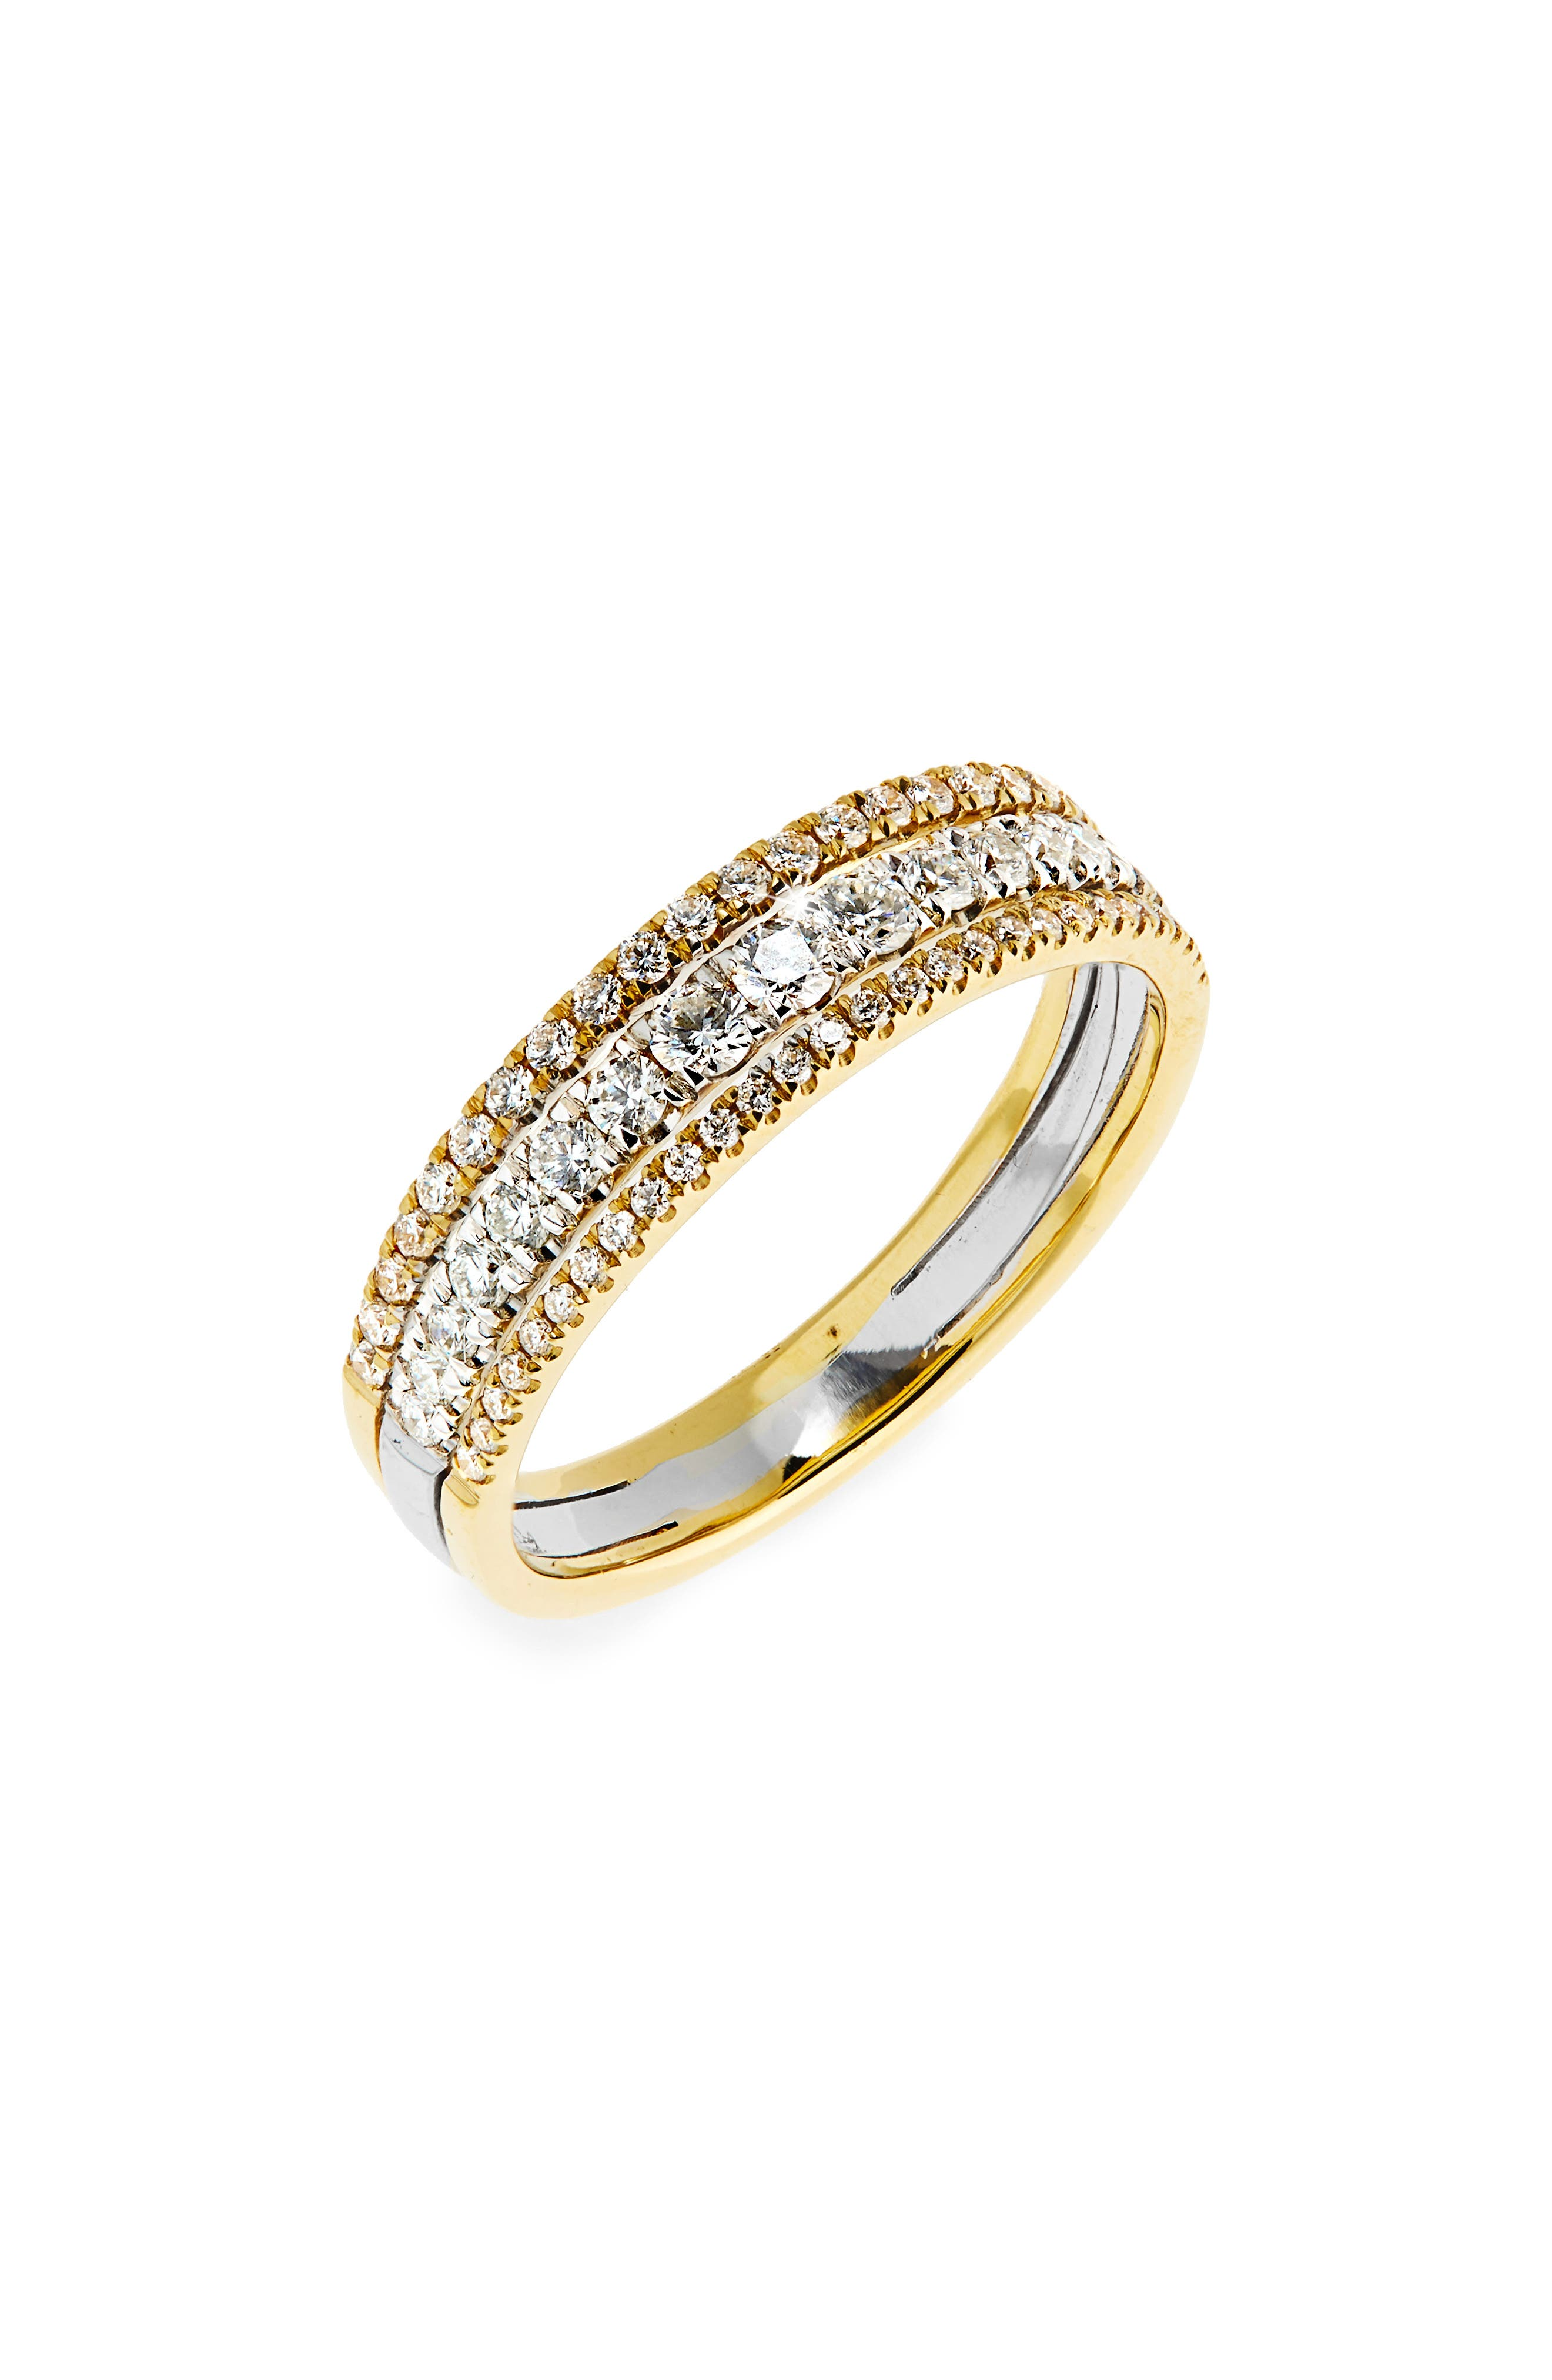 Diamond Stack Ring,                         Main,                         color, Yellow Gold/ White Gold